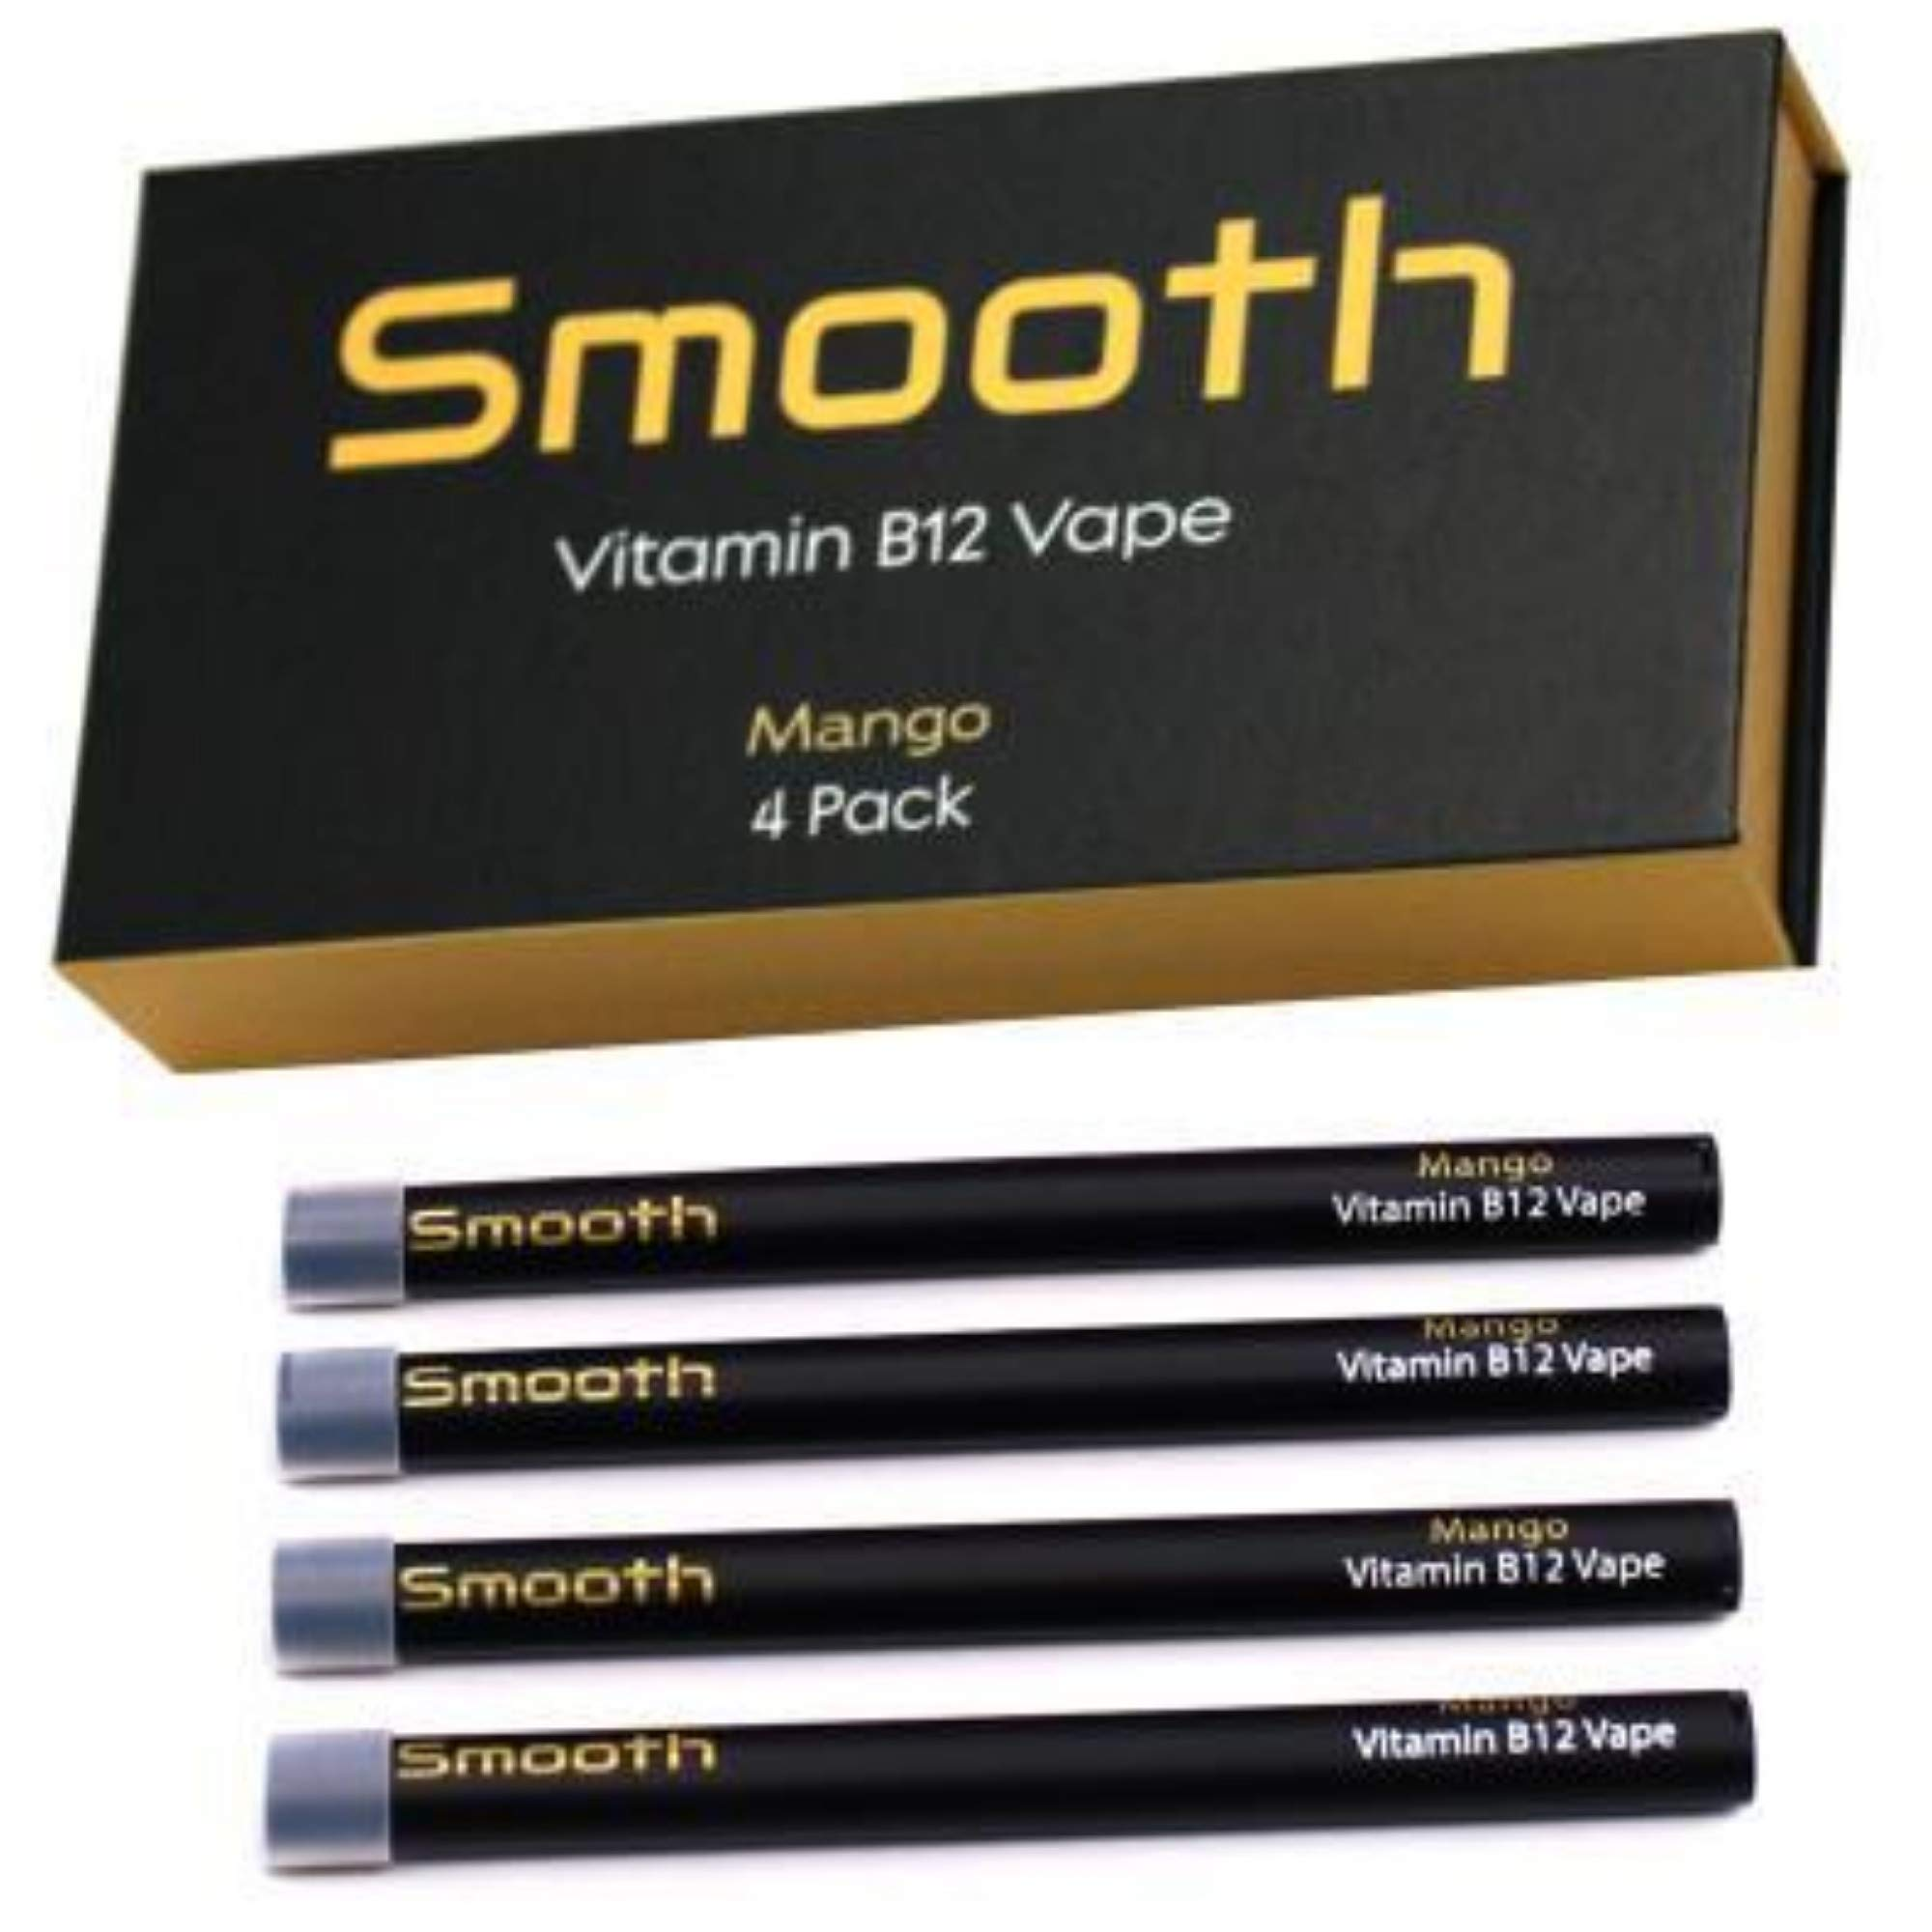 Smooth Vitamin B12 Pen for Energy: All Natural, Vegan-Friendly Vitamin B12 Inhalable Aromatherapy | Great Taste, No Calories, Nicotine Free | Mango Flavor (4 Pack) by Smooth Vitamins